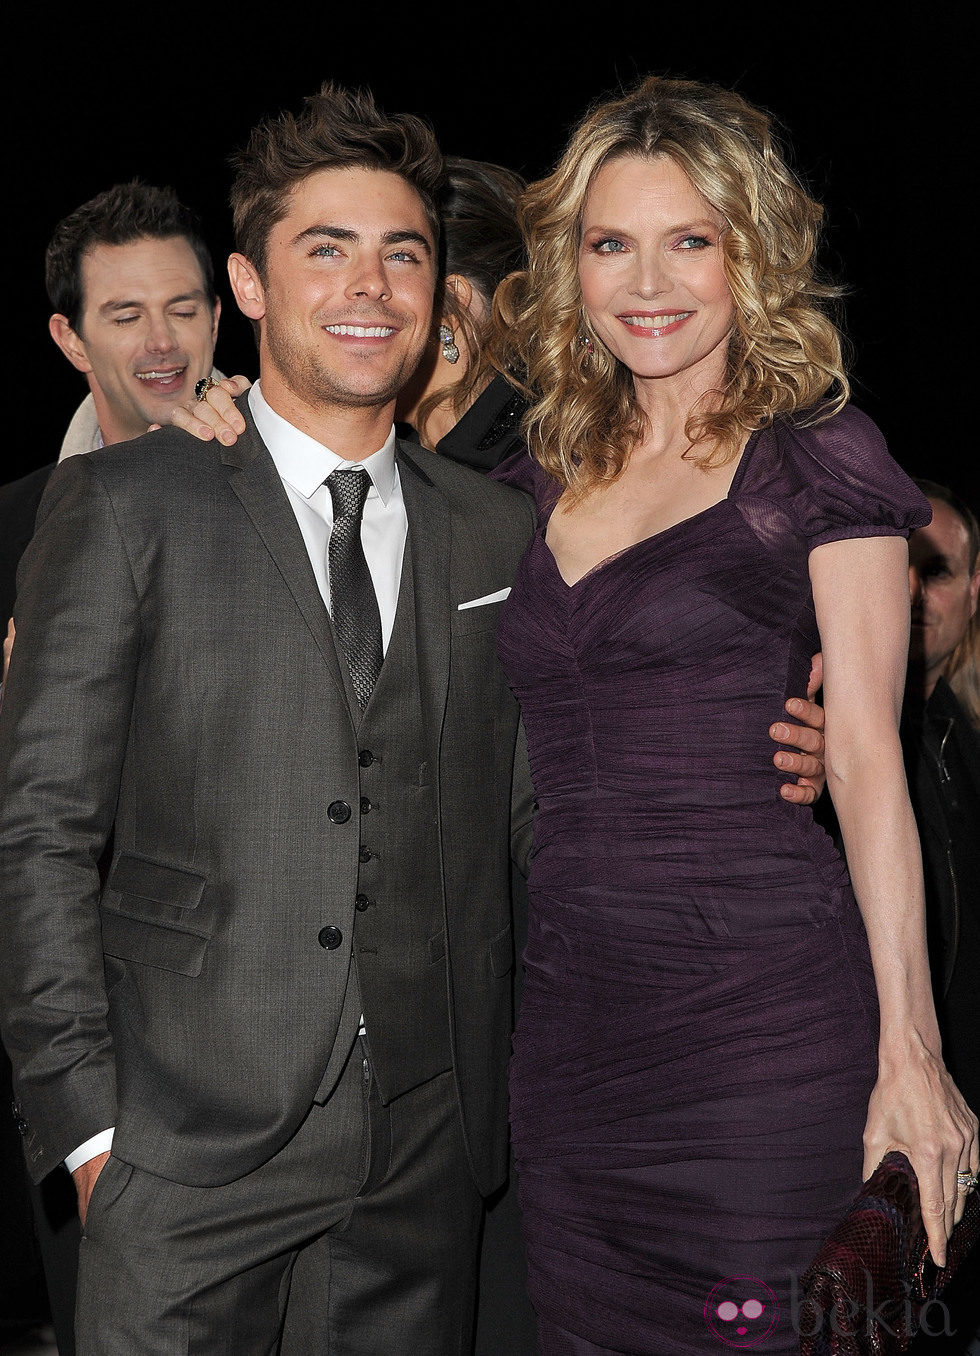 Michelle Pfeiffer y Zac Efron en el estreno de 'New Year's Eve' en Los Angeles